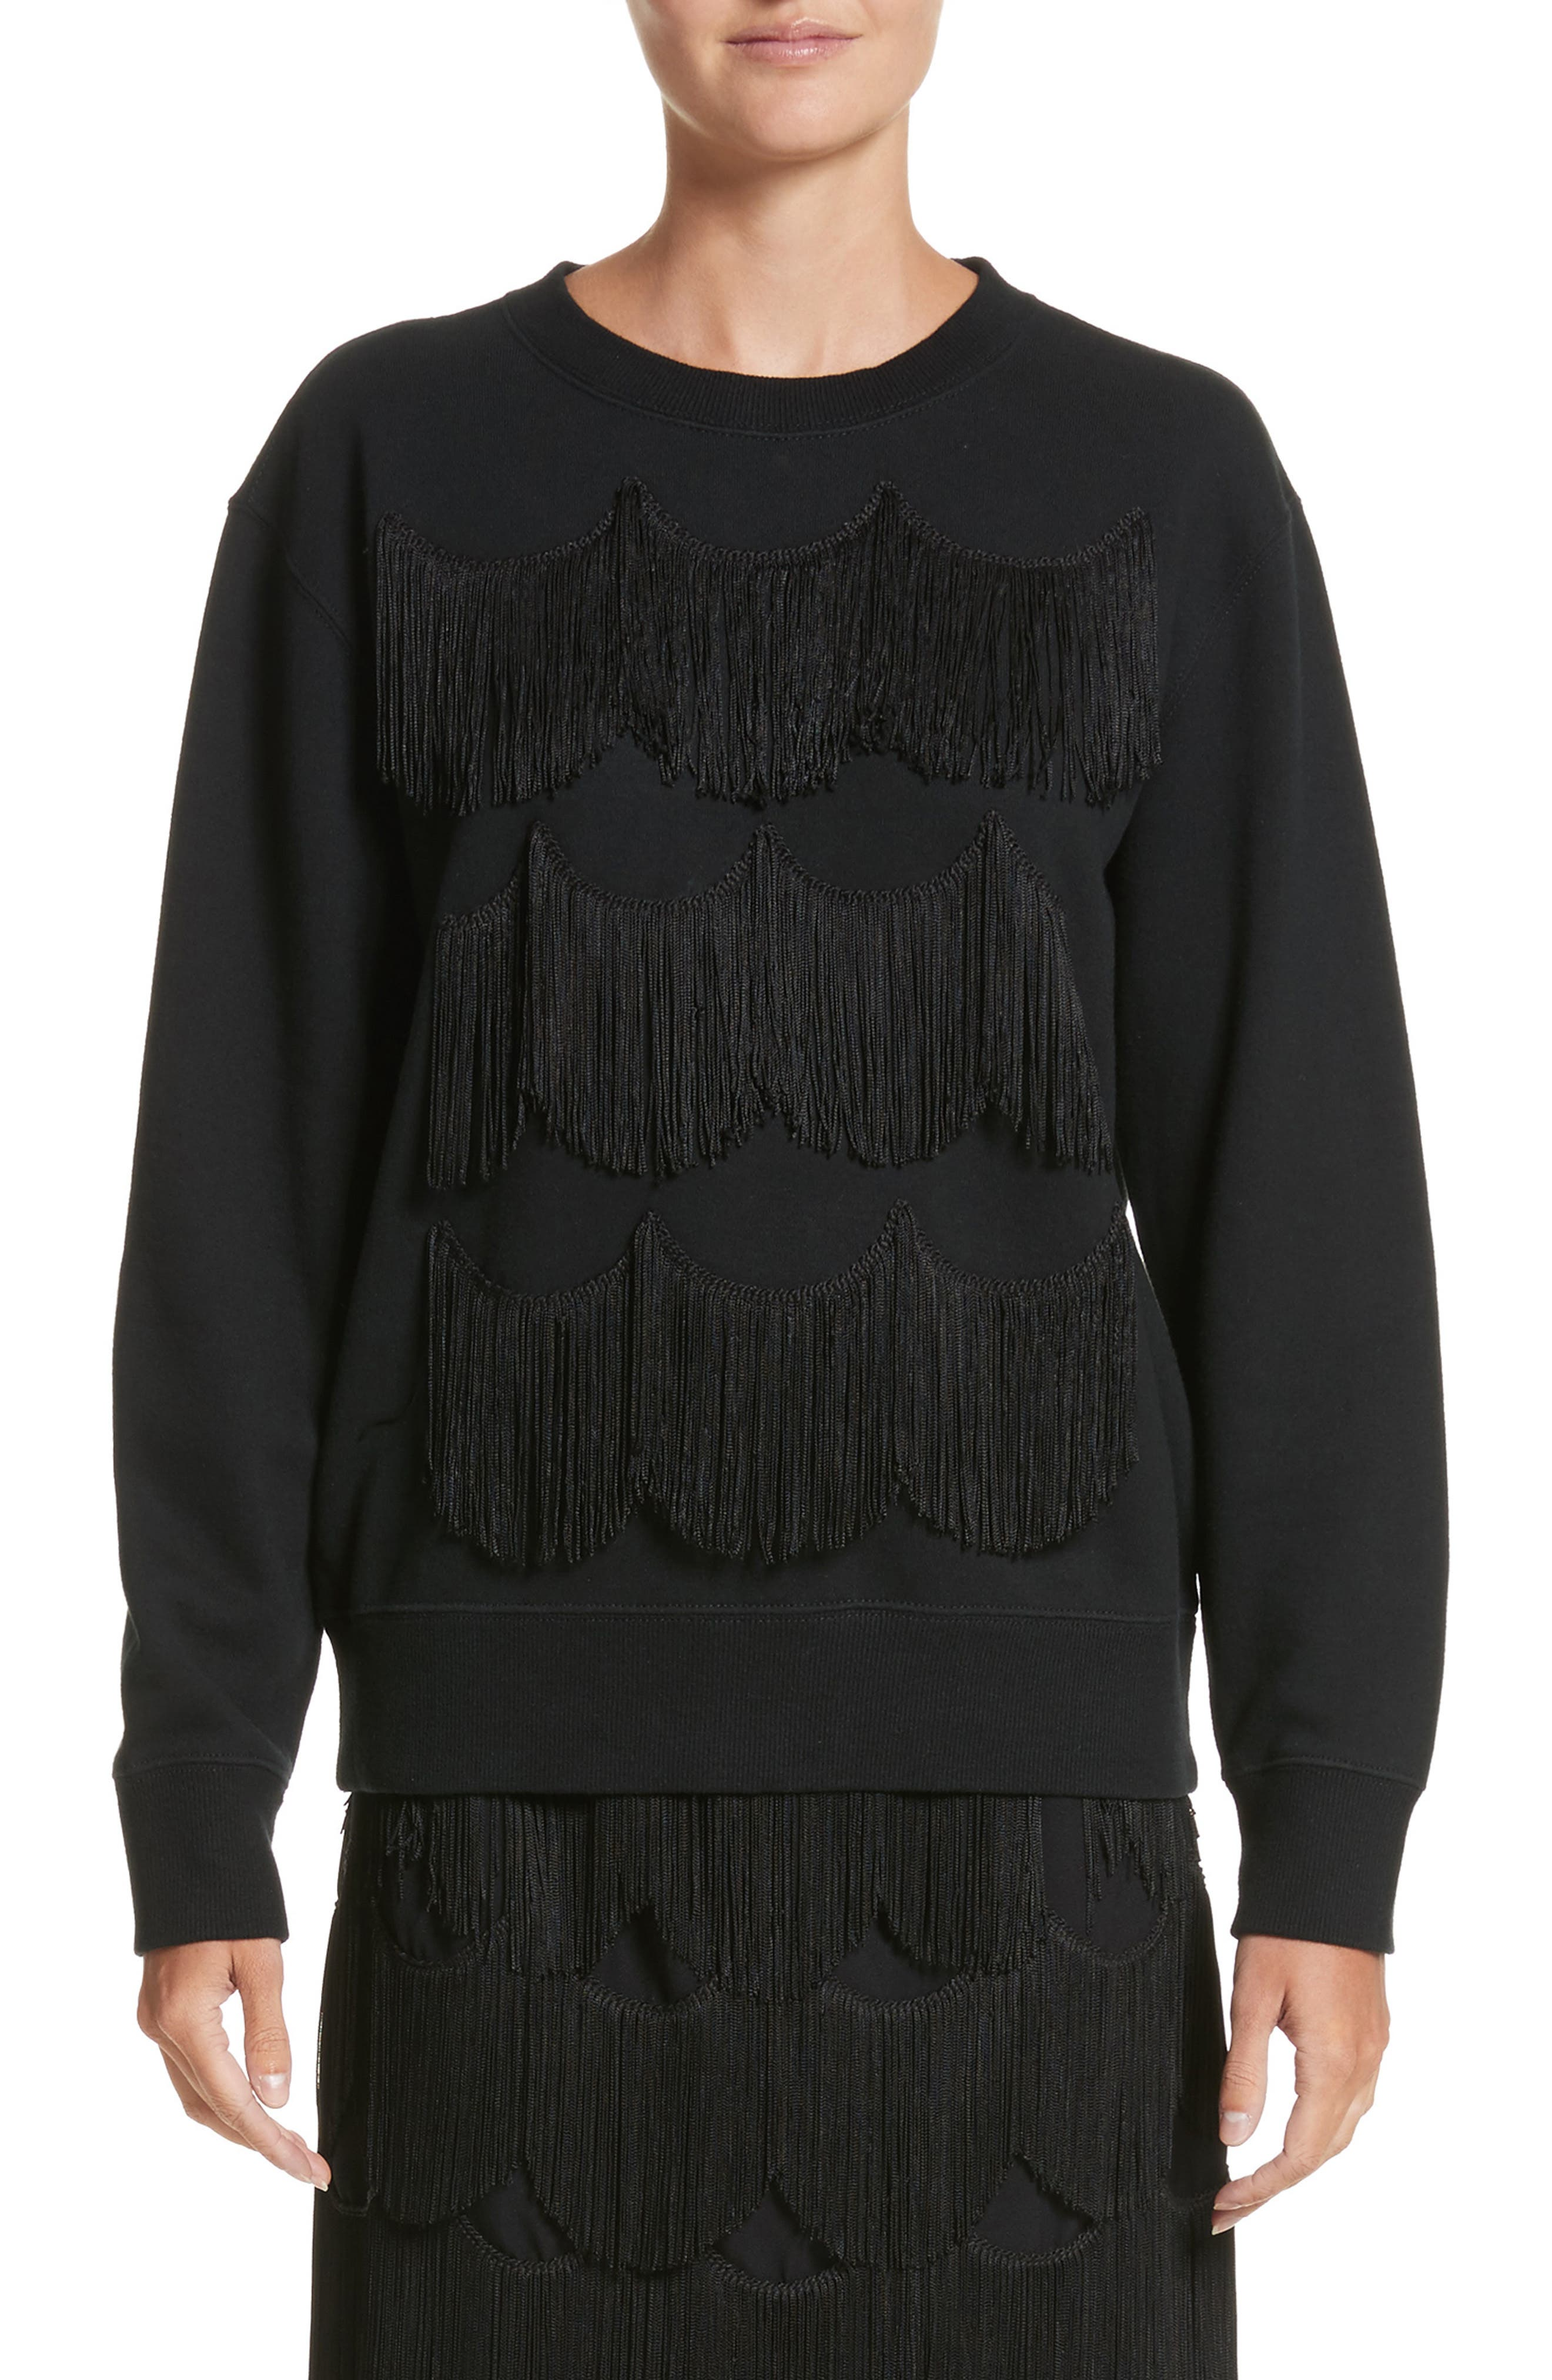 Alternate Image 1 Selected - MARC JACOBS Fringe Cotton Sweatshirt